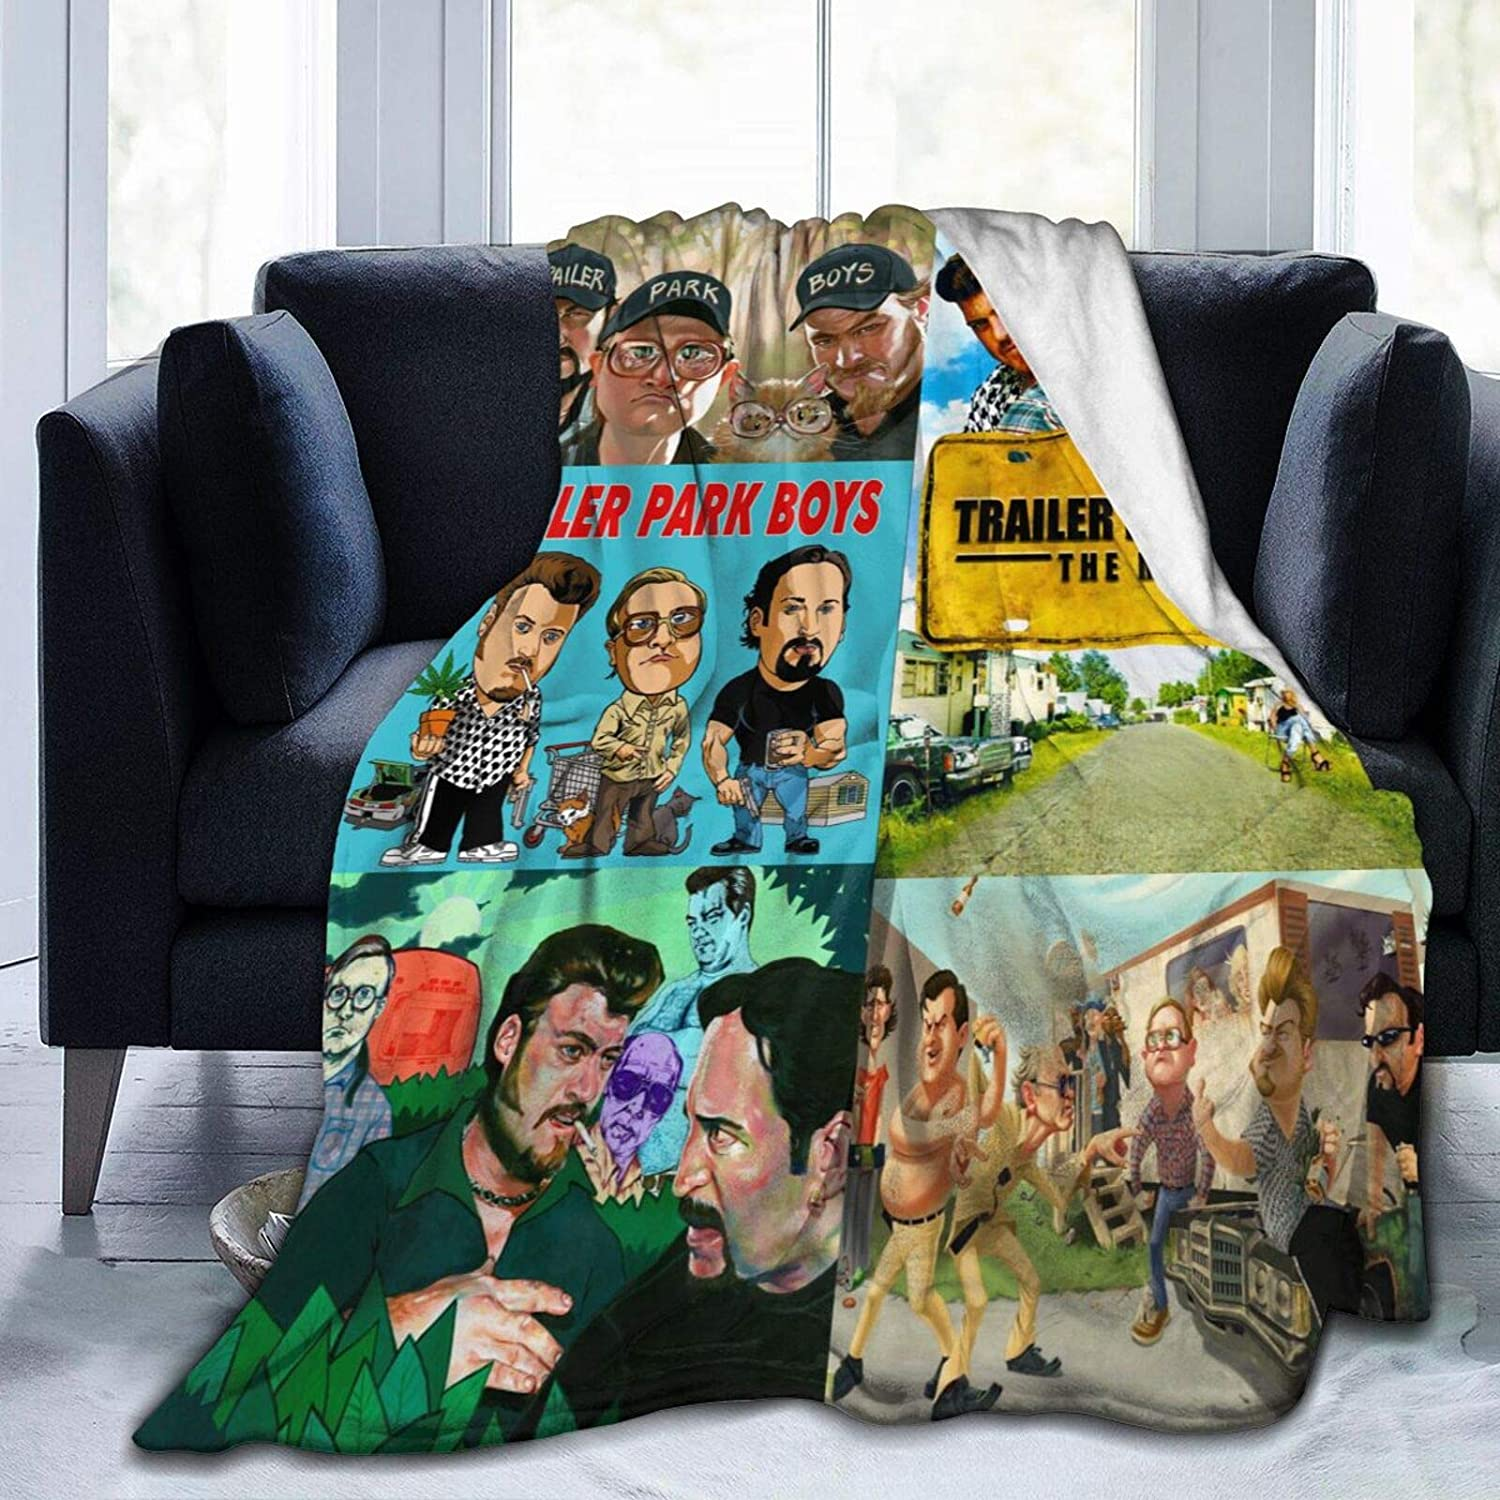 Ultra Soft Fleece Trailer Park Boys Throw Blanket - Picturing The Boys On Your Couch